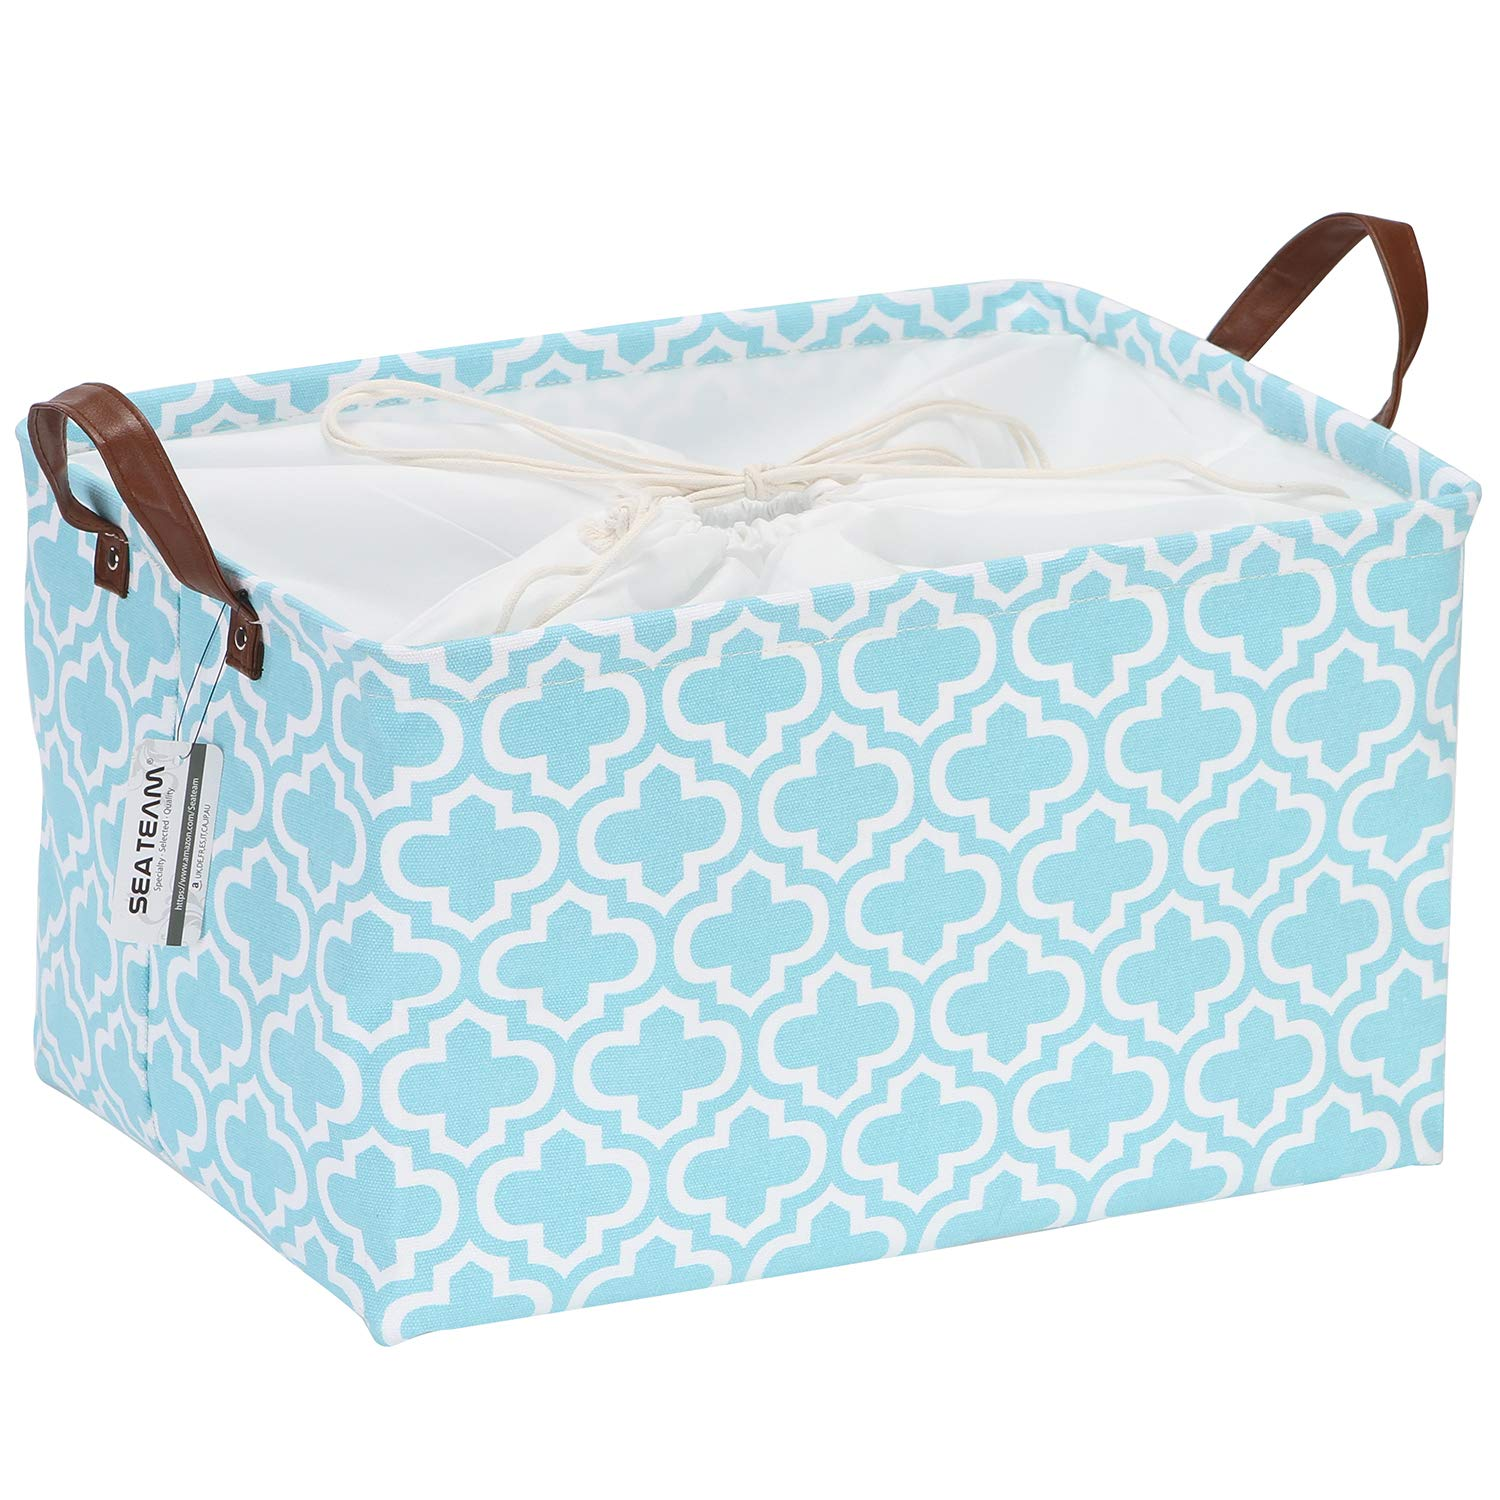 Sea Team Moroccan Quatrefoil Pattern Canvas Fabric Storage Basket Collapsible Geometric Design Storage Bin with Drawstring Cover and PU Leather Handles, 16.5 by 11.8 inches, Waterproof Inner, Aqua